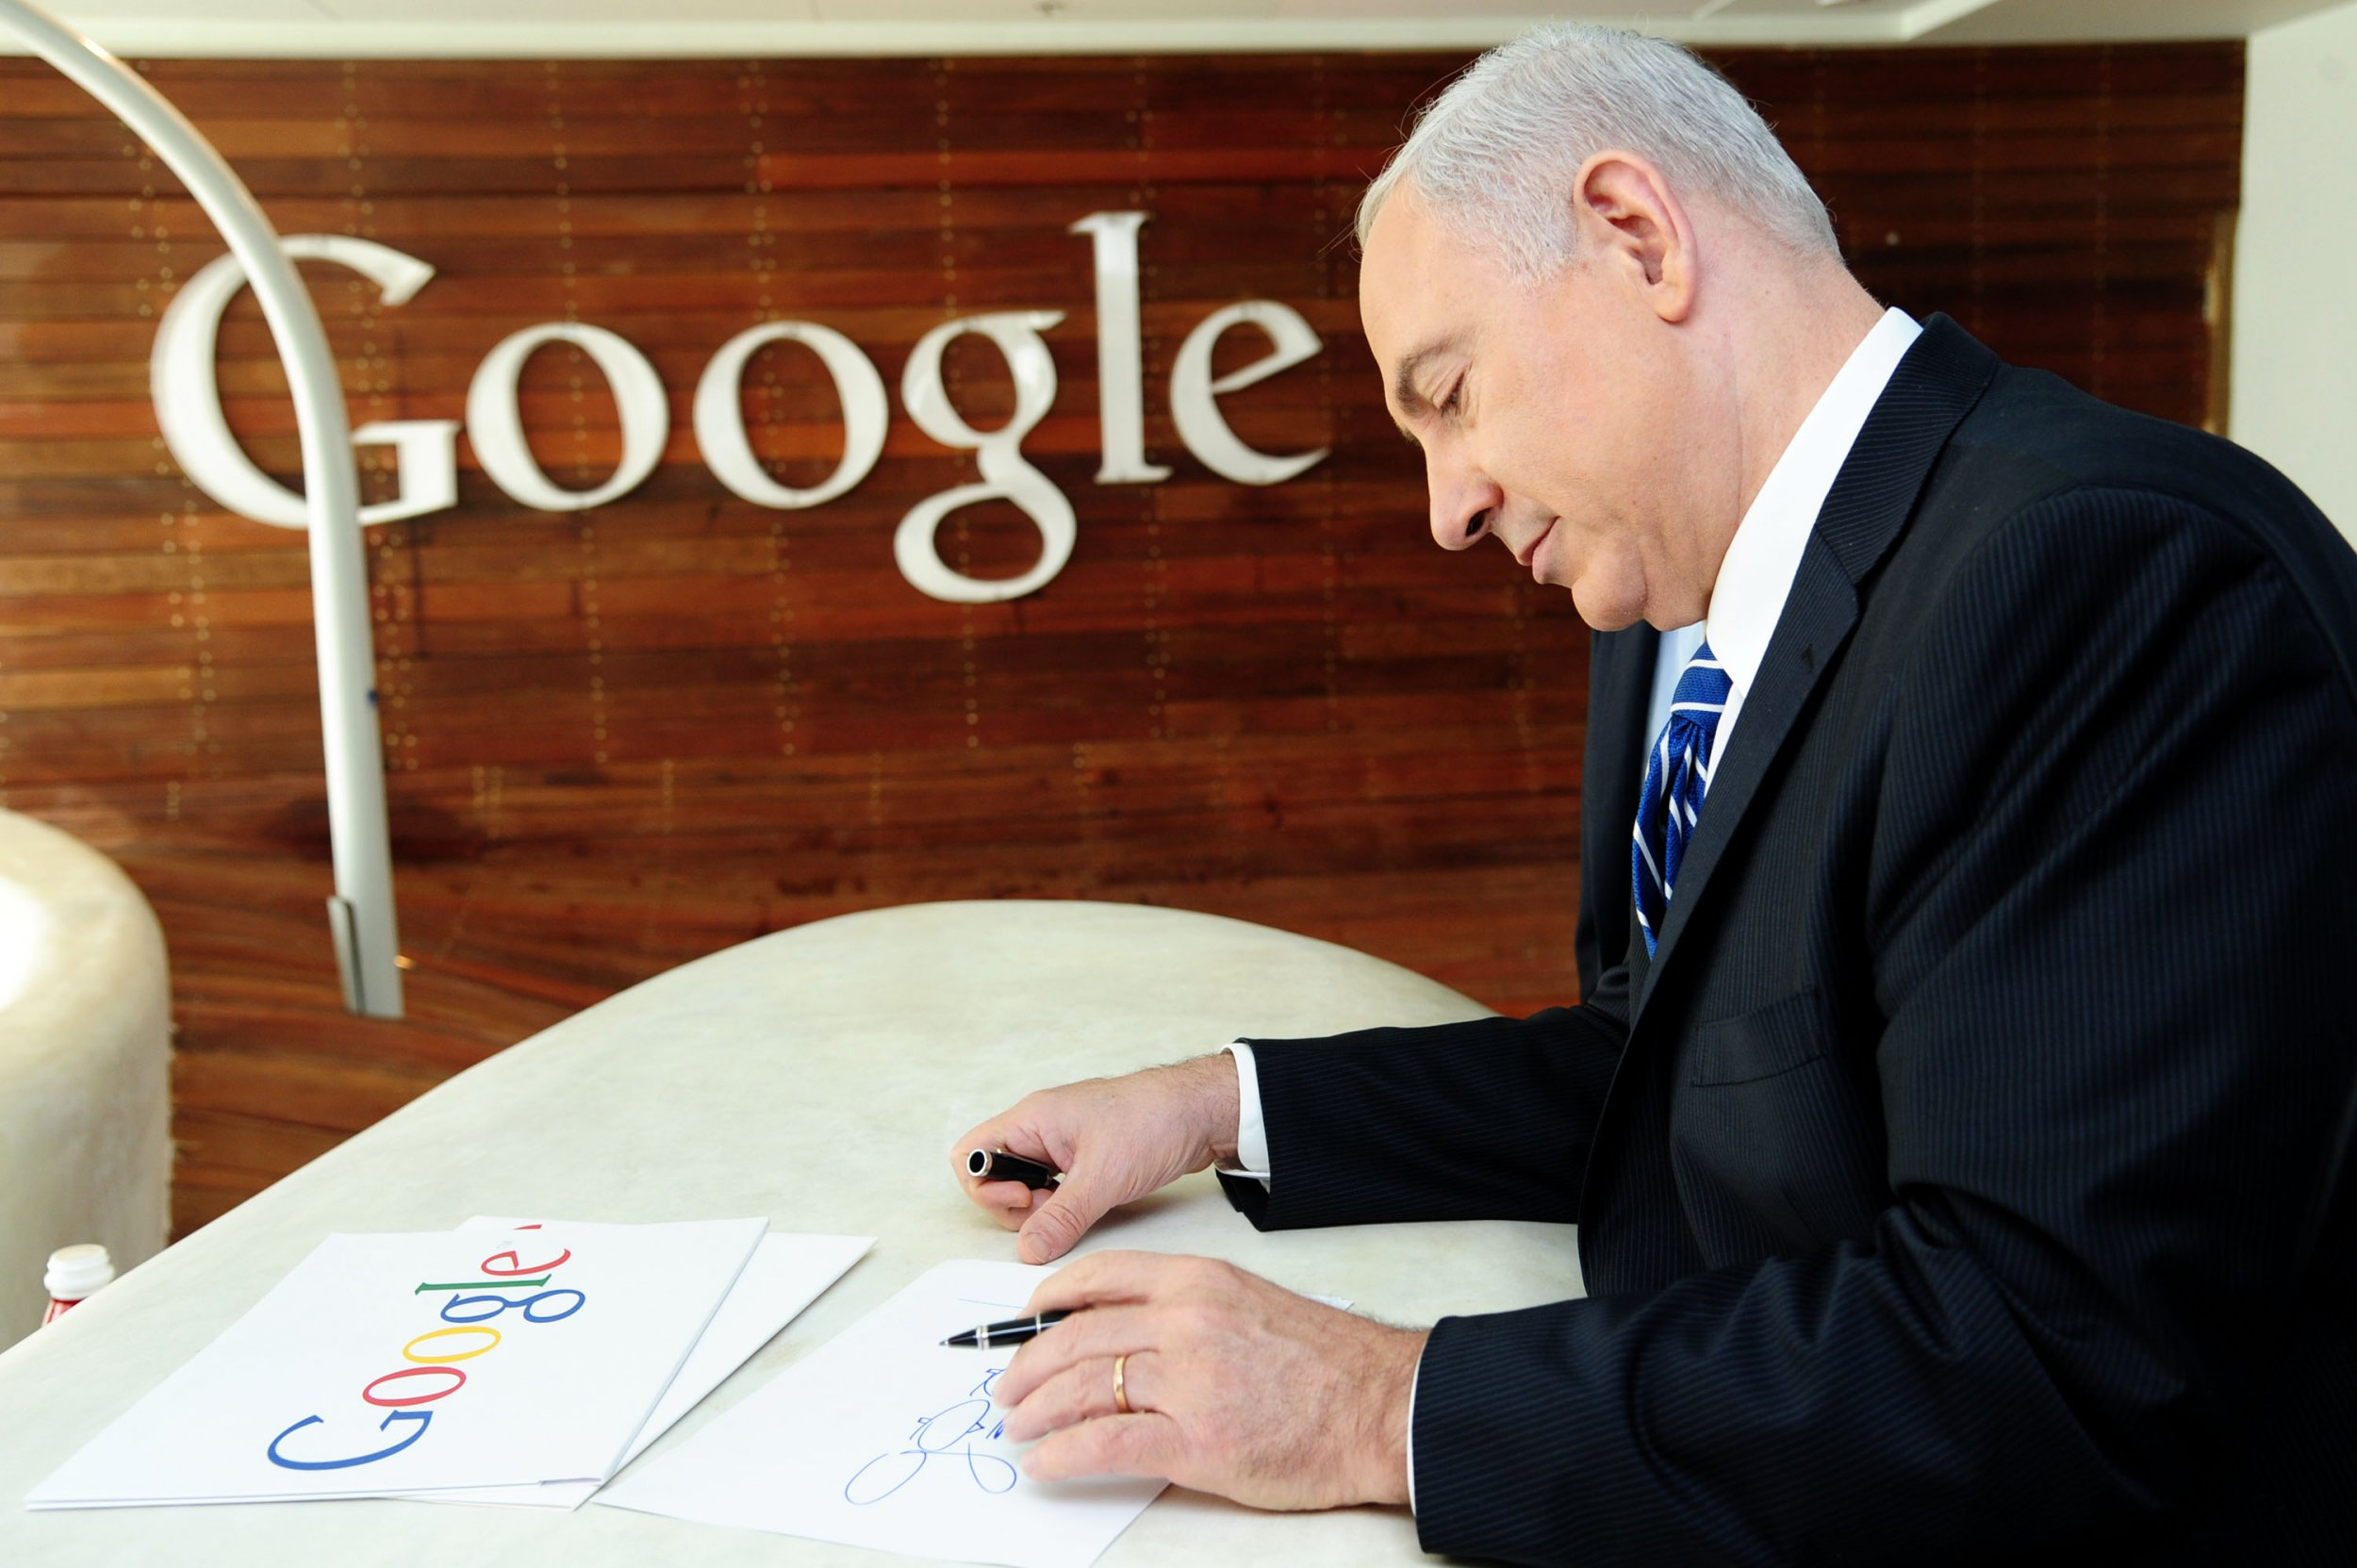 Israel startup launch attended by Prime Minister Benjamin Netanyahu